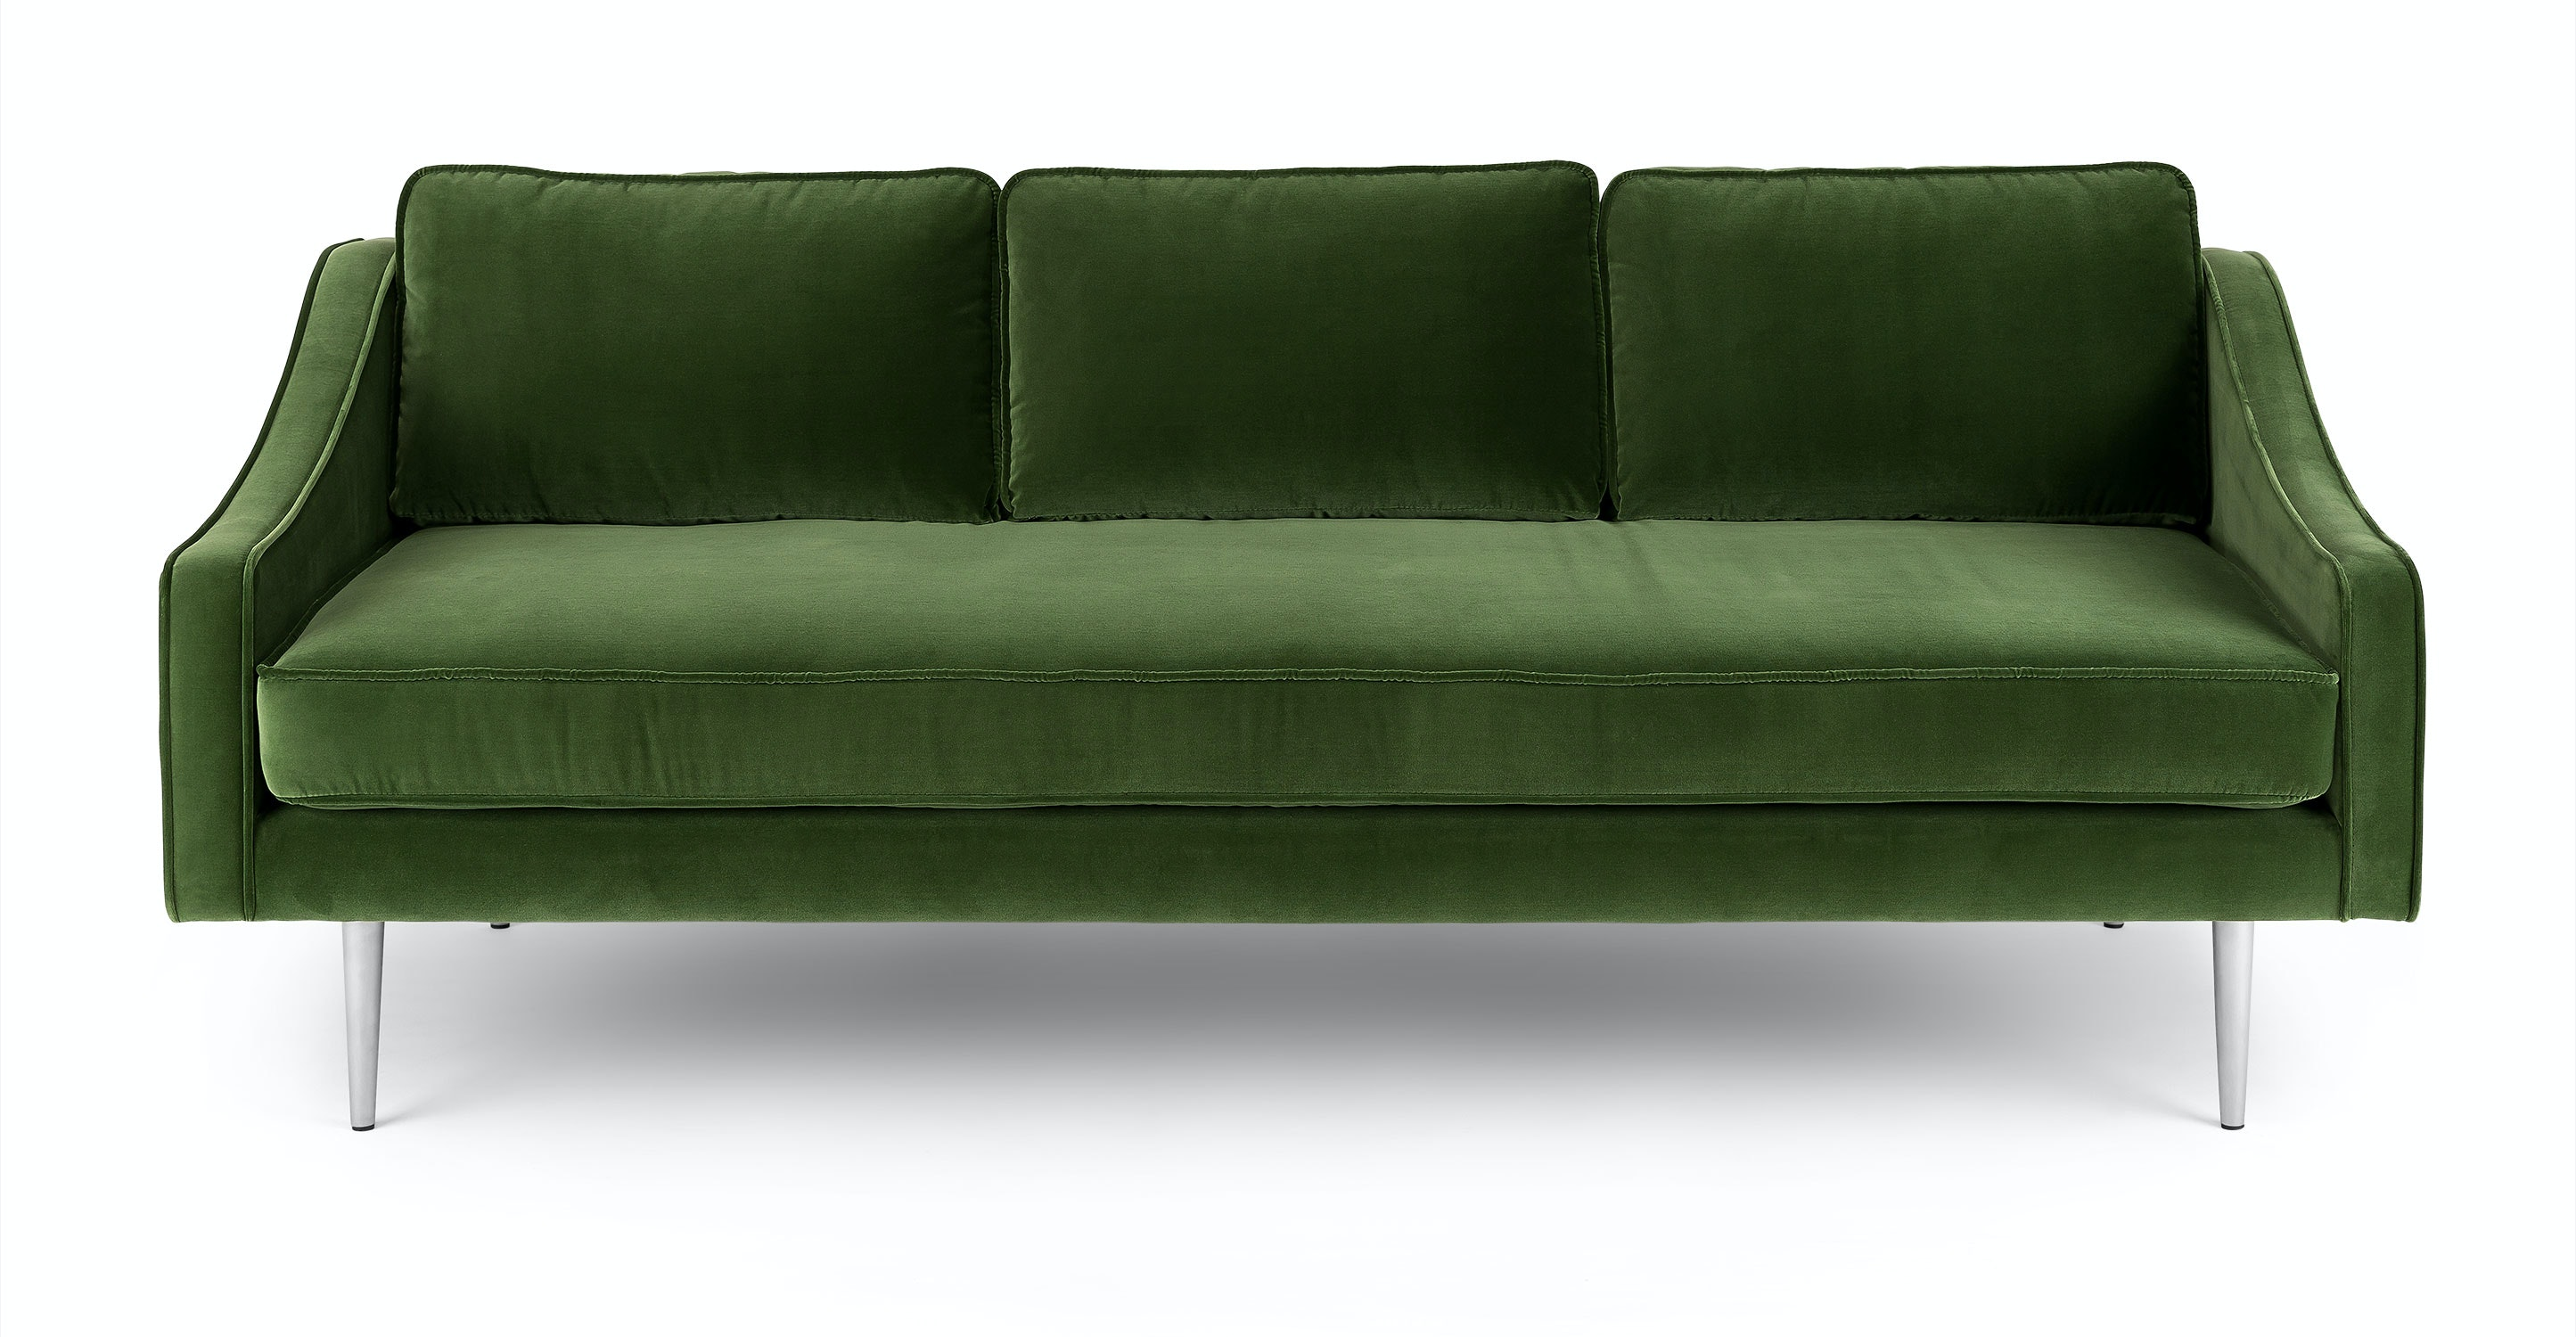 Mirage Grass Green Sofa Sofas Article